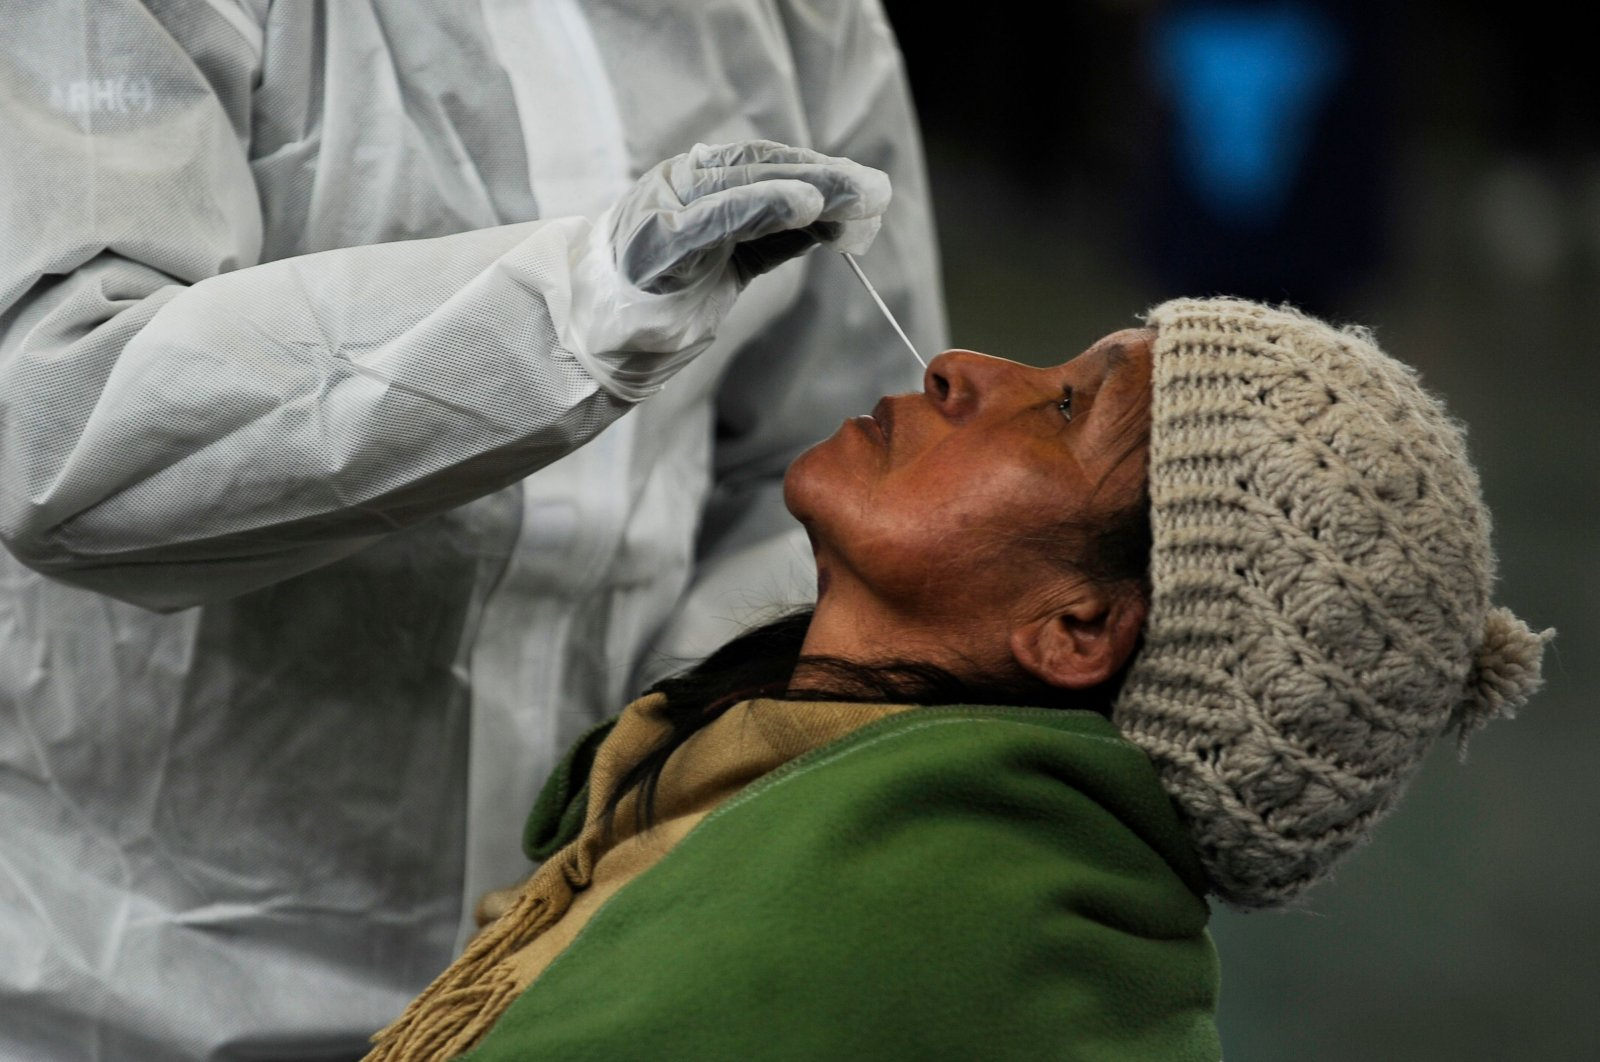 A Bolivian health worker gives a PCR test for a woman at a COVID-19 diagnosis center in La Paz, Jan. 7, 2021. (AFP Photo)